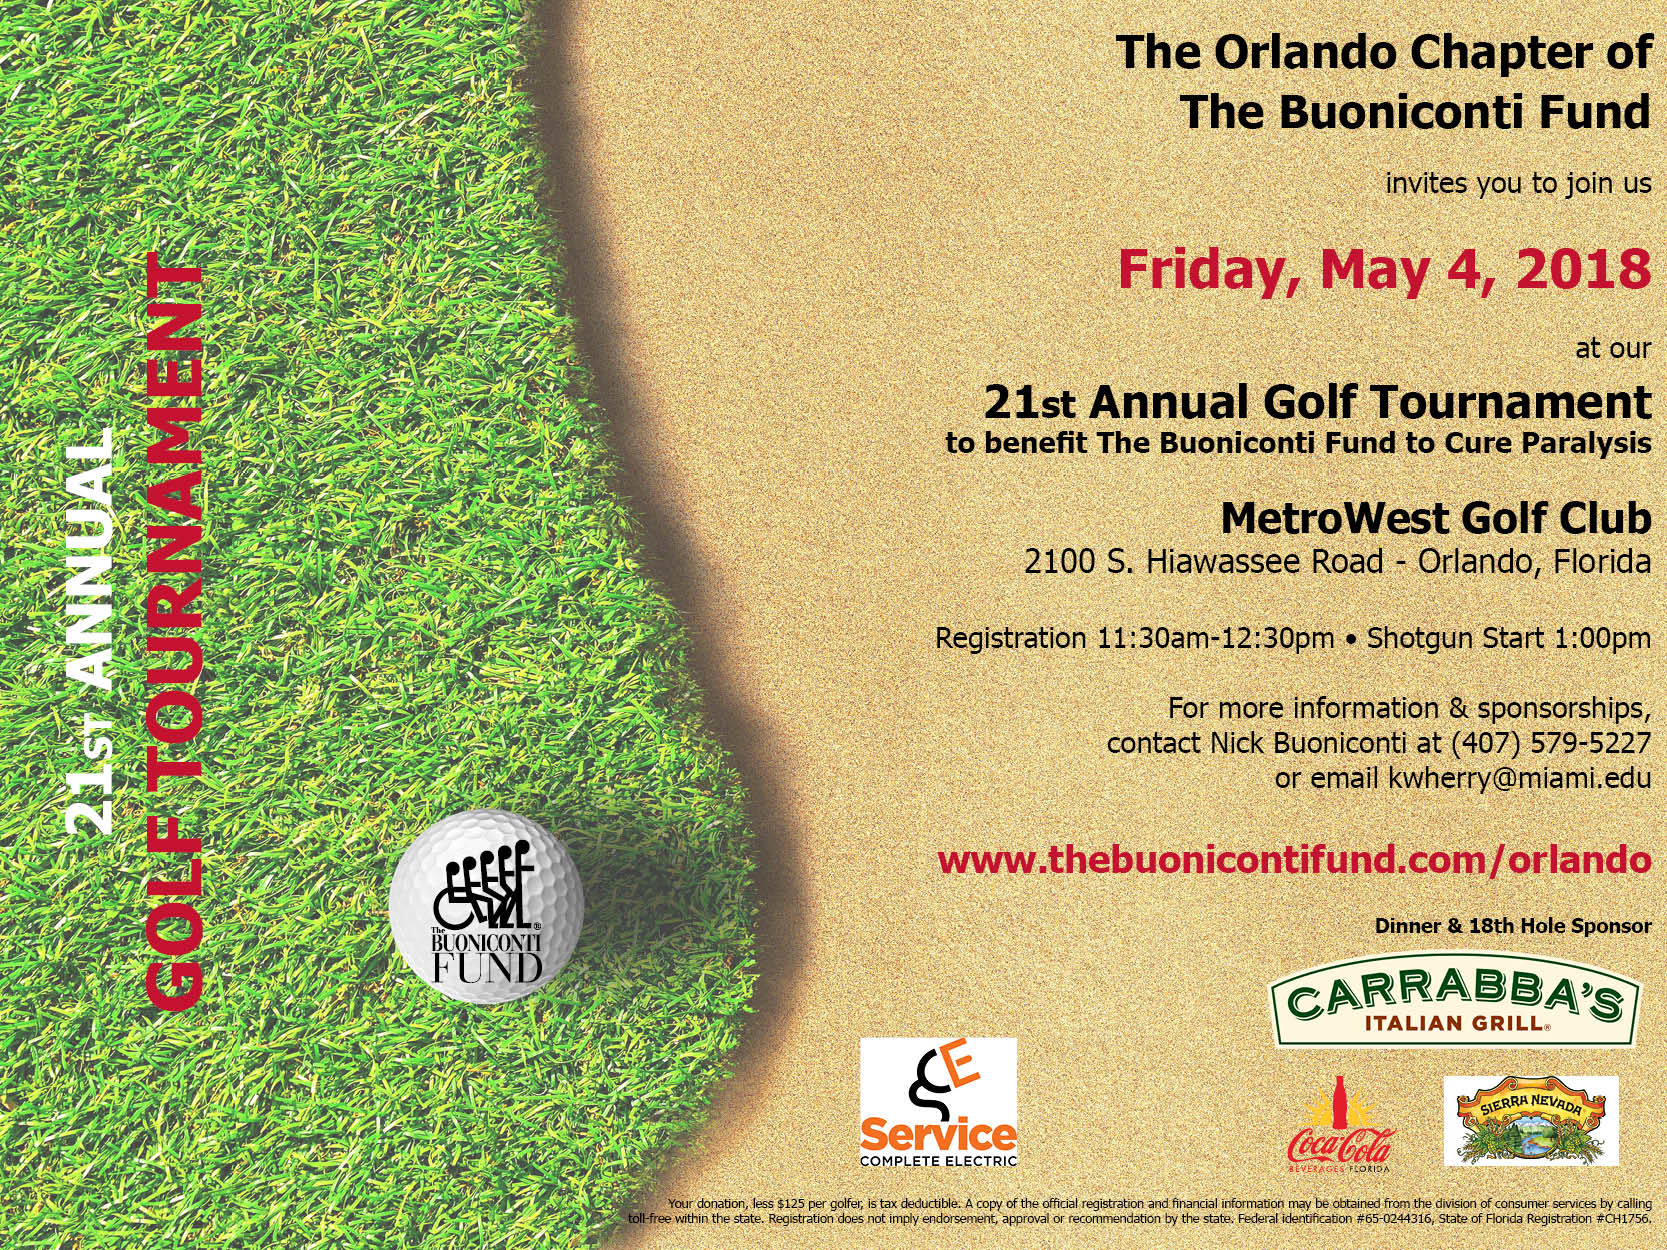 Orlando Chapter's 21st Annual Golf Tournament